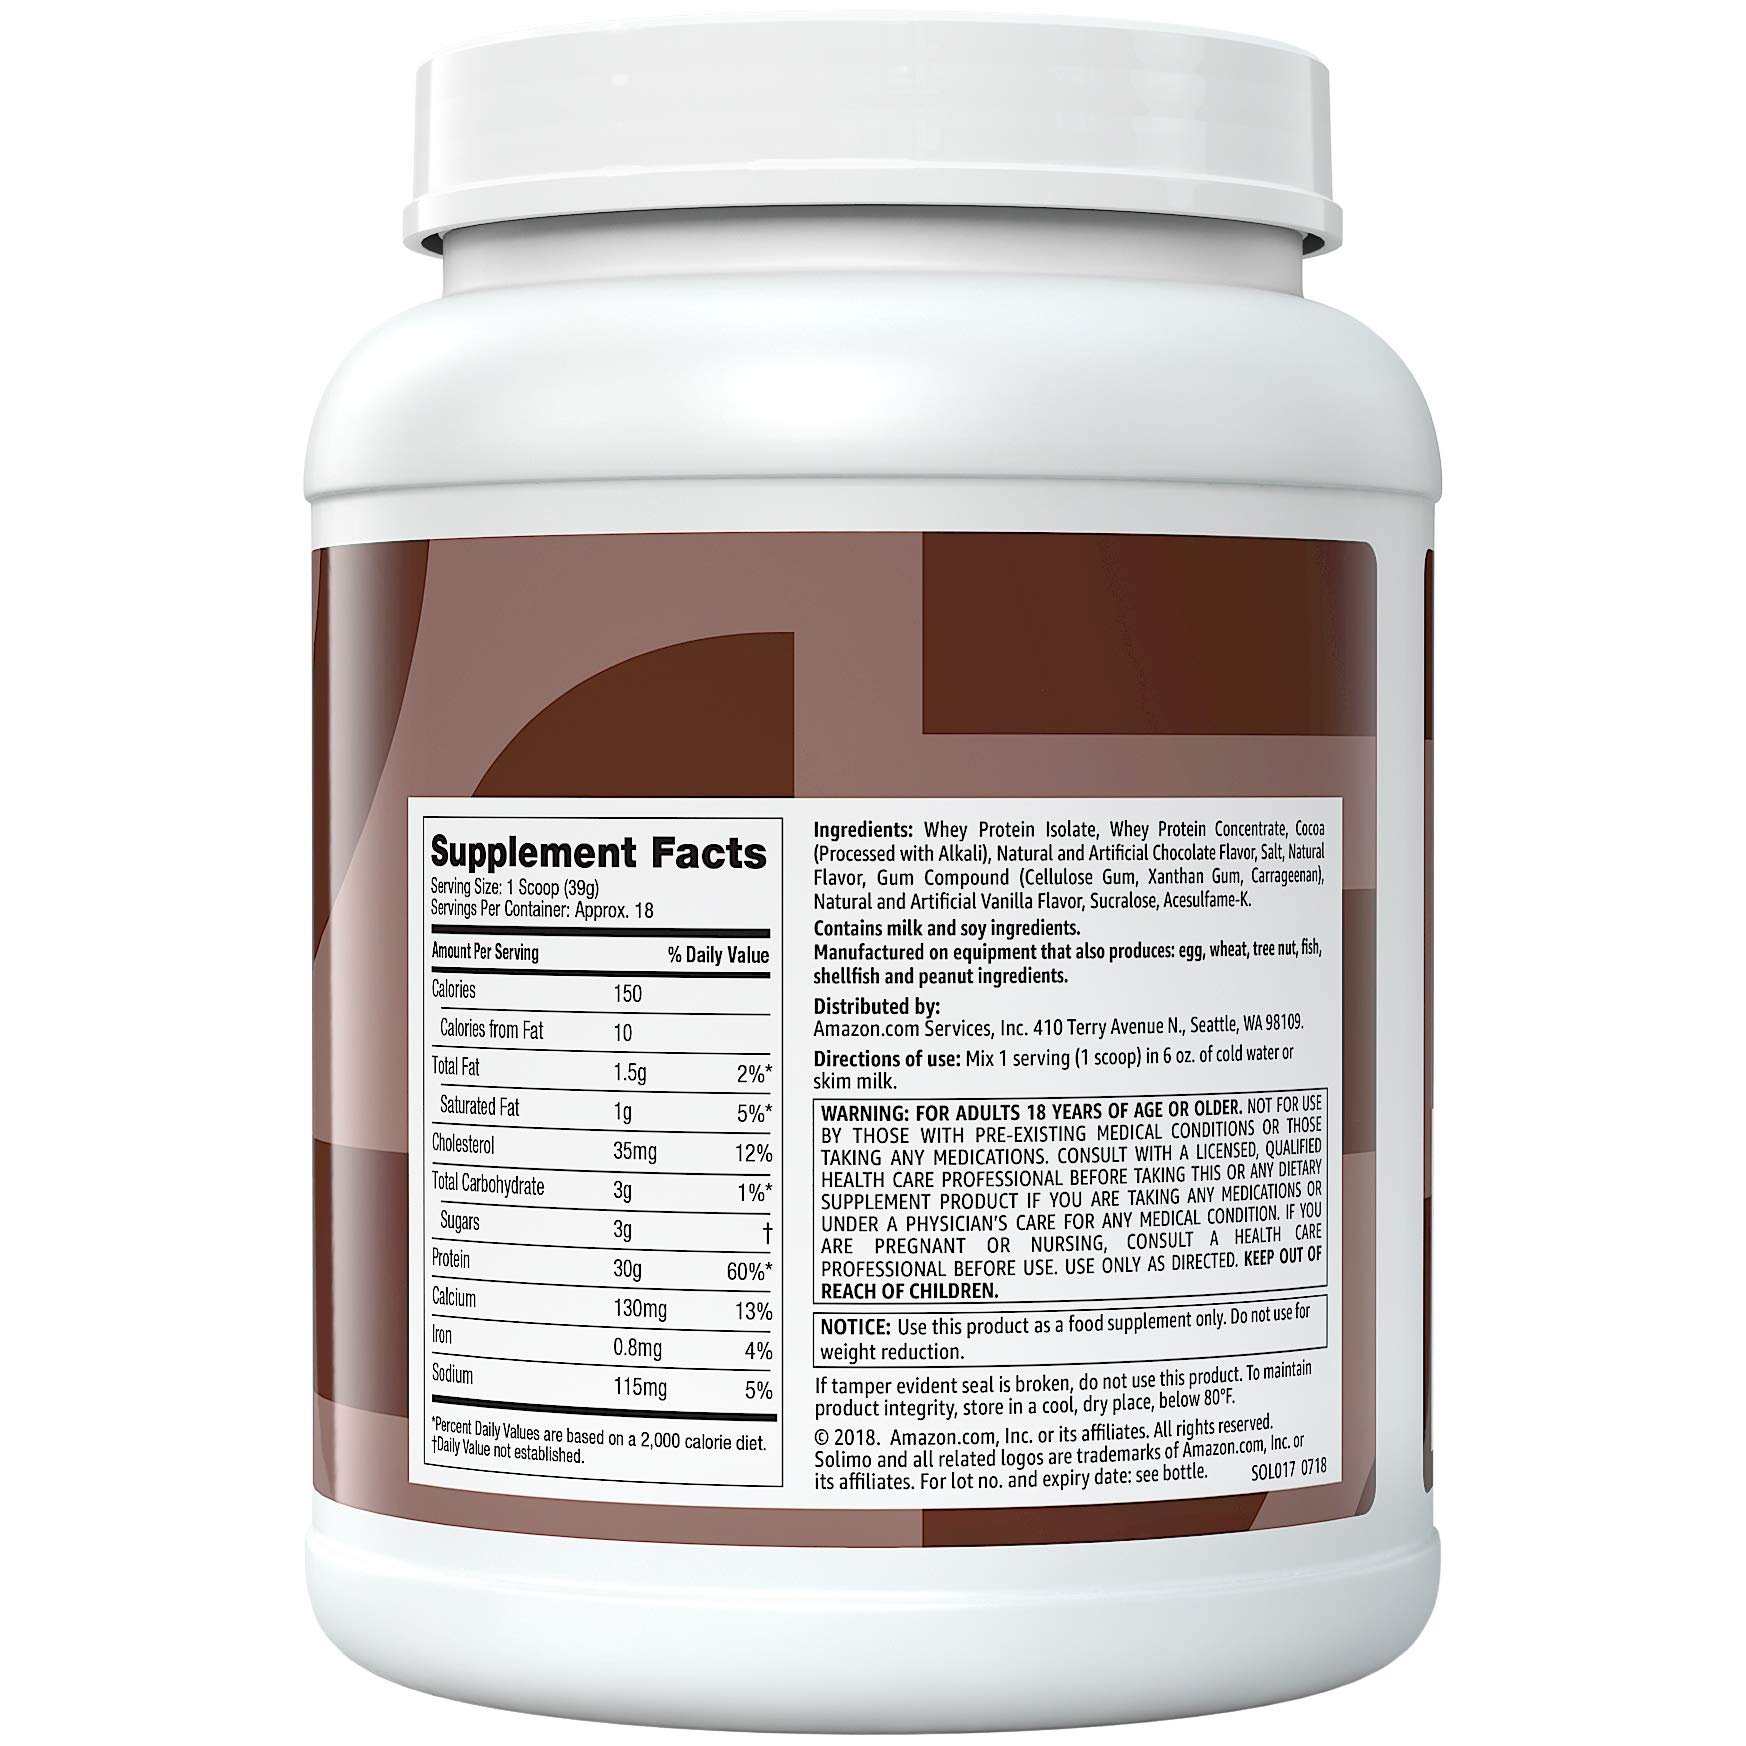 Amazon Brand - Solimo Whey Protein Isolate Blend, Chocolate, 1.5 Pound (18 Servings) by SOLIMO (Image #2)